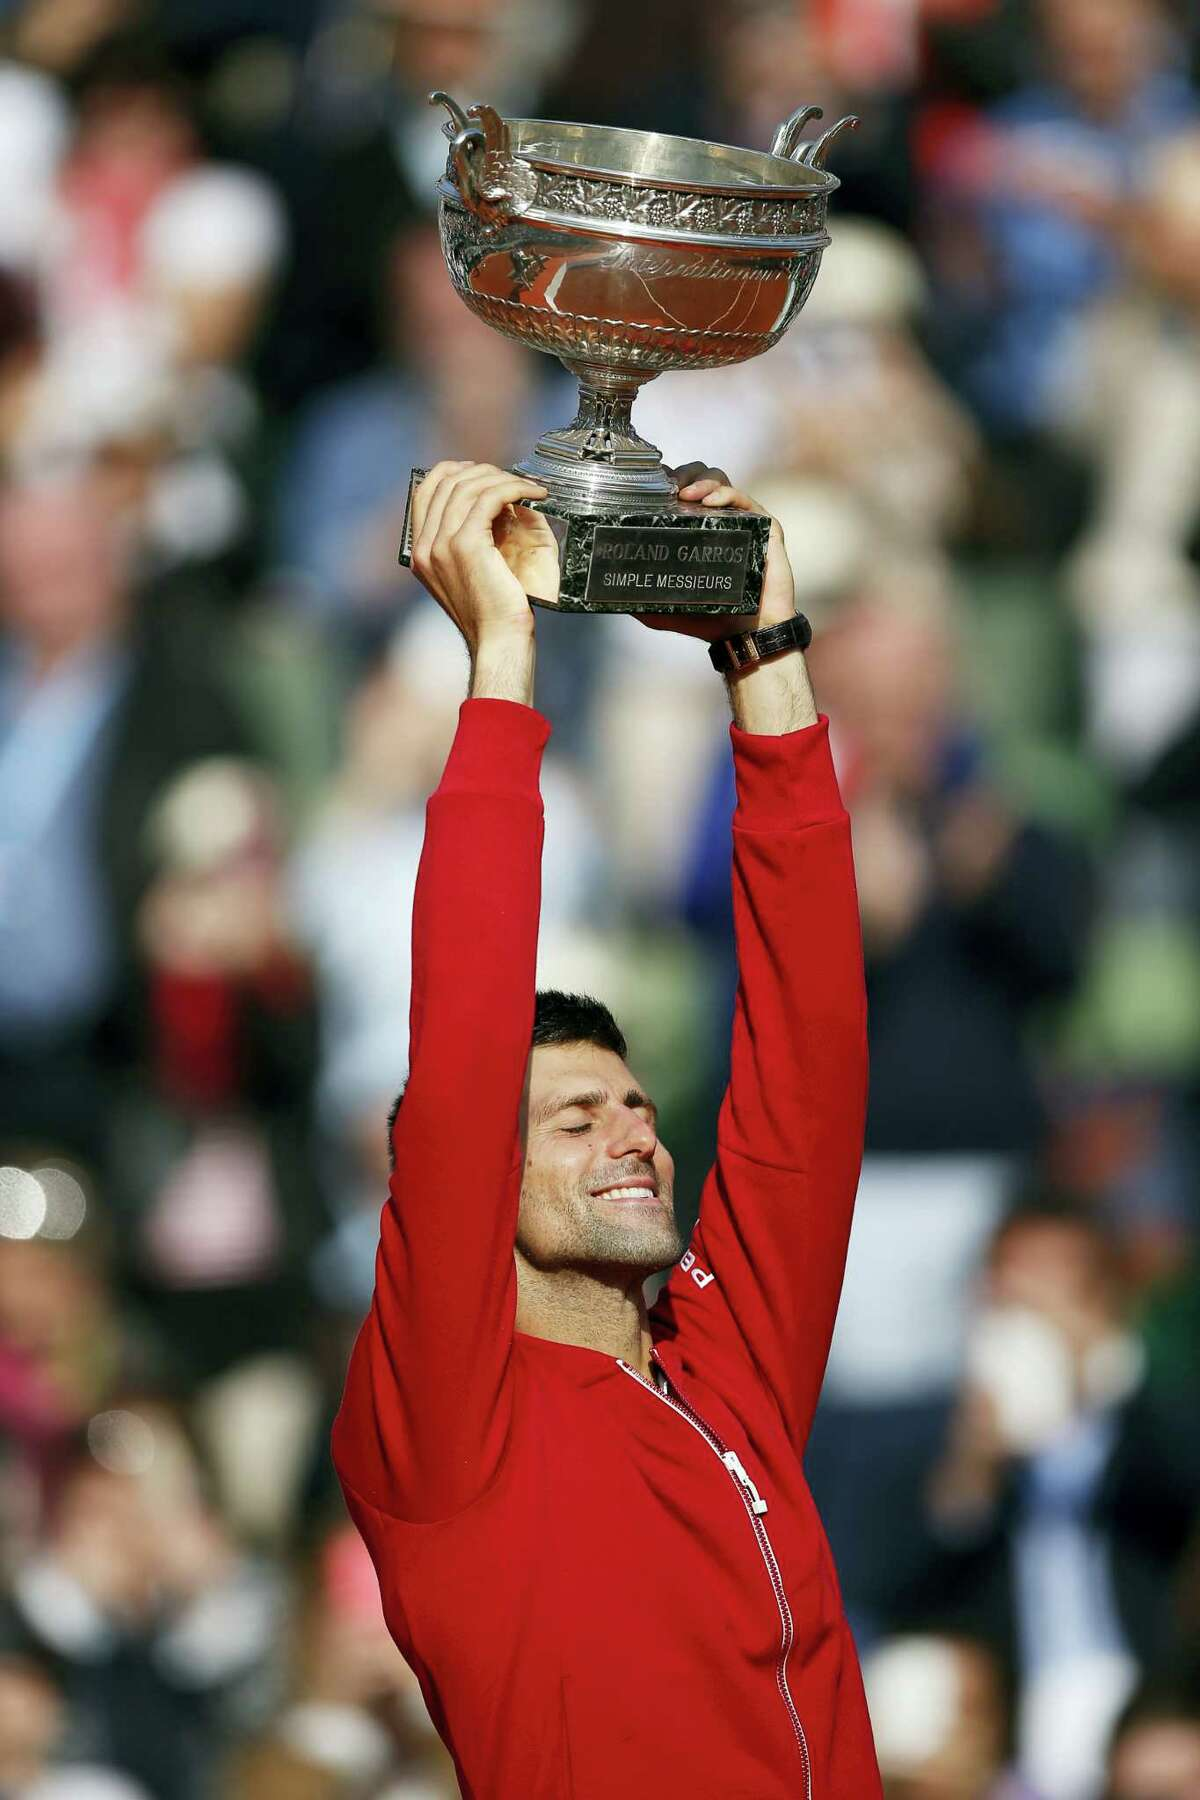 Serbia's Novak Djokovic gives a thumbs up as he holds the trophy after winning the final of the French Open tennis tournament against Britain's Andy Murray in four sets 3-6, 6-1, 6-2, 6-4, at the Roland Garros stadium in Paris, France, Sunday, June 5, 2016.